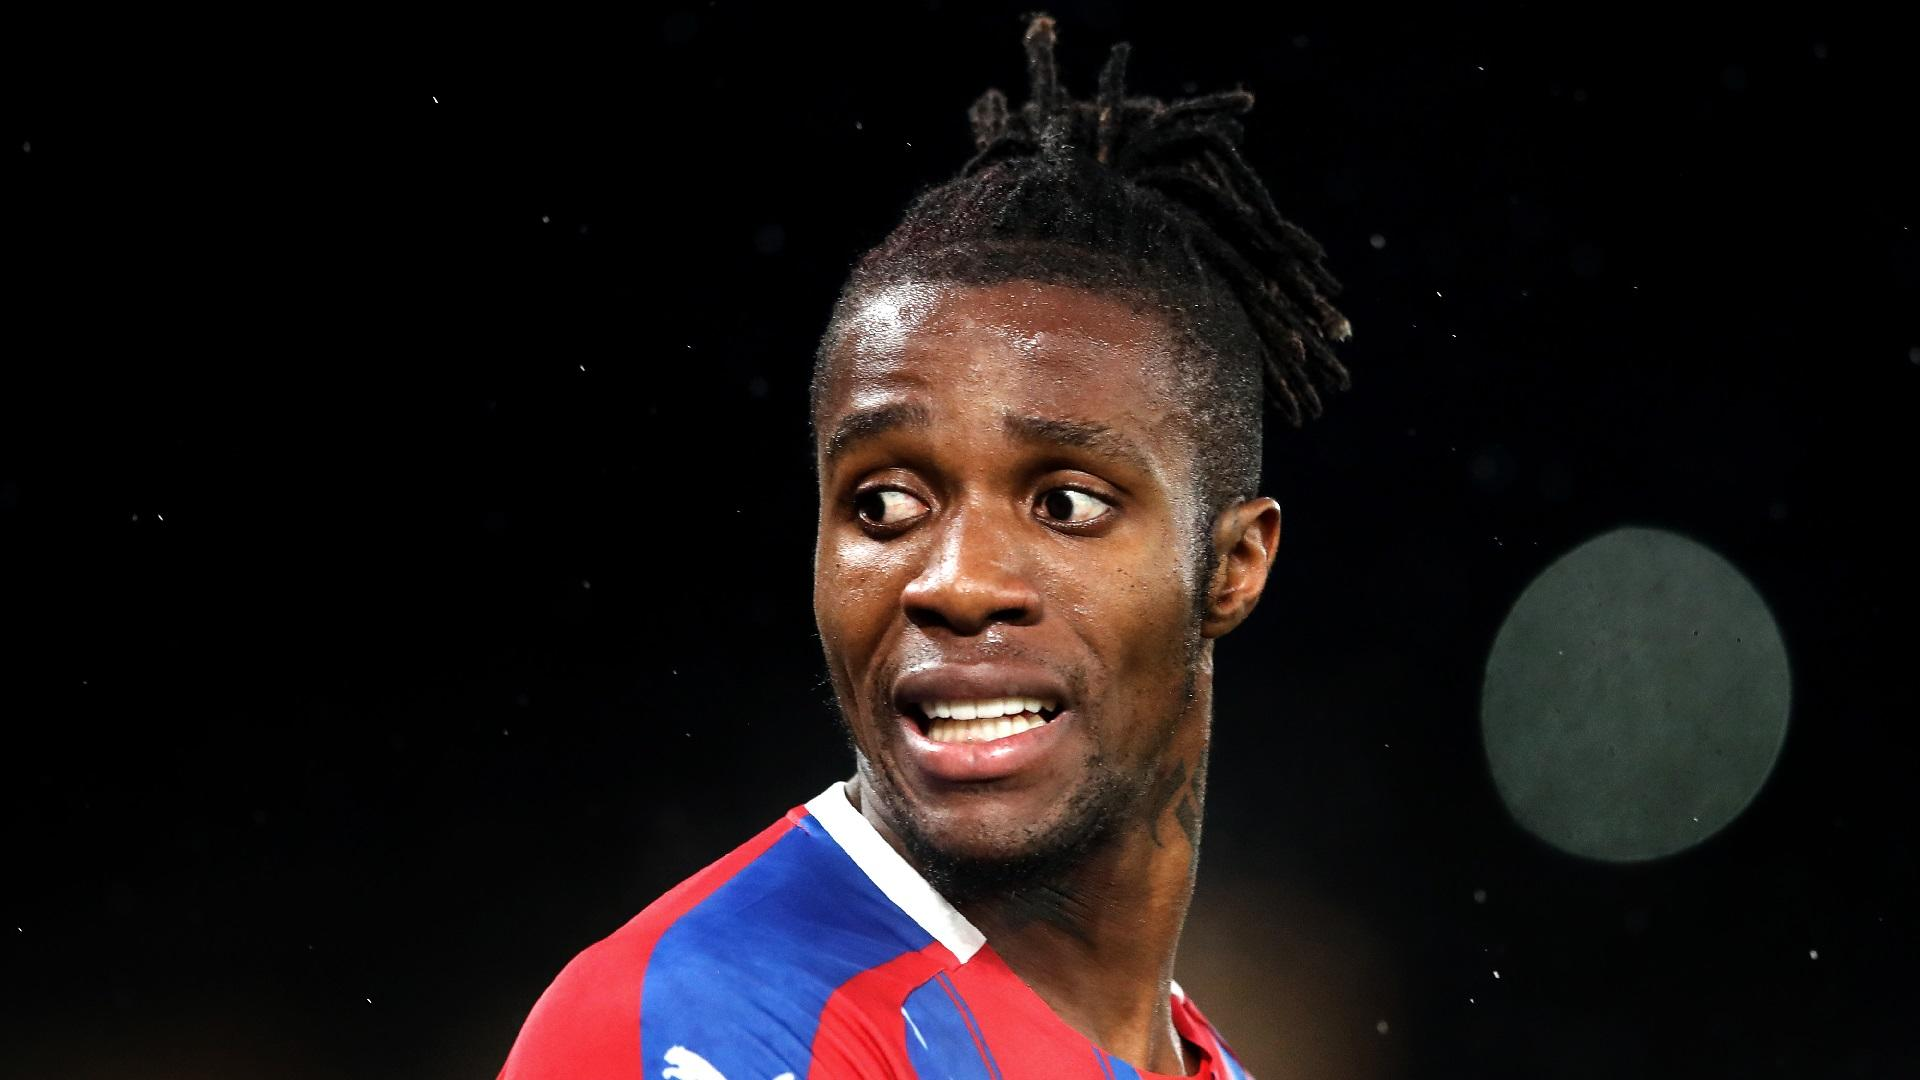 Zaha would have become 'one of the best' if Sir Alex had stayed at Man Utd, says ex-Palace team-mate Murray